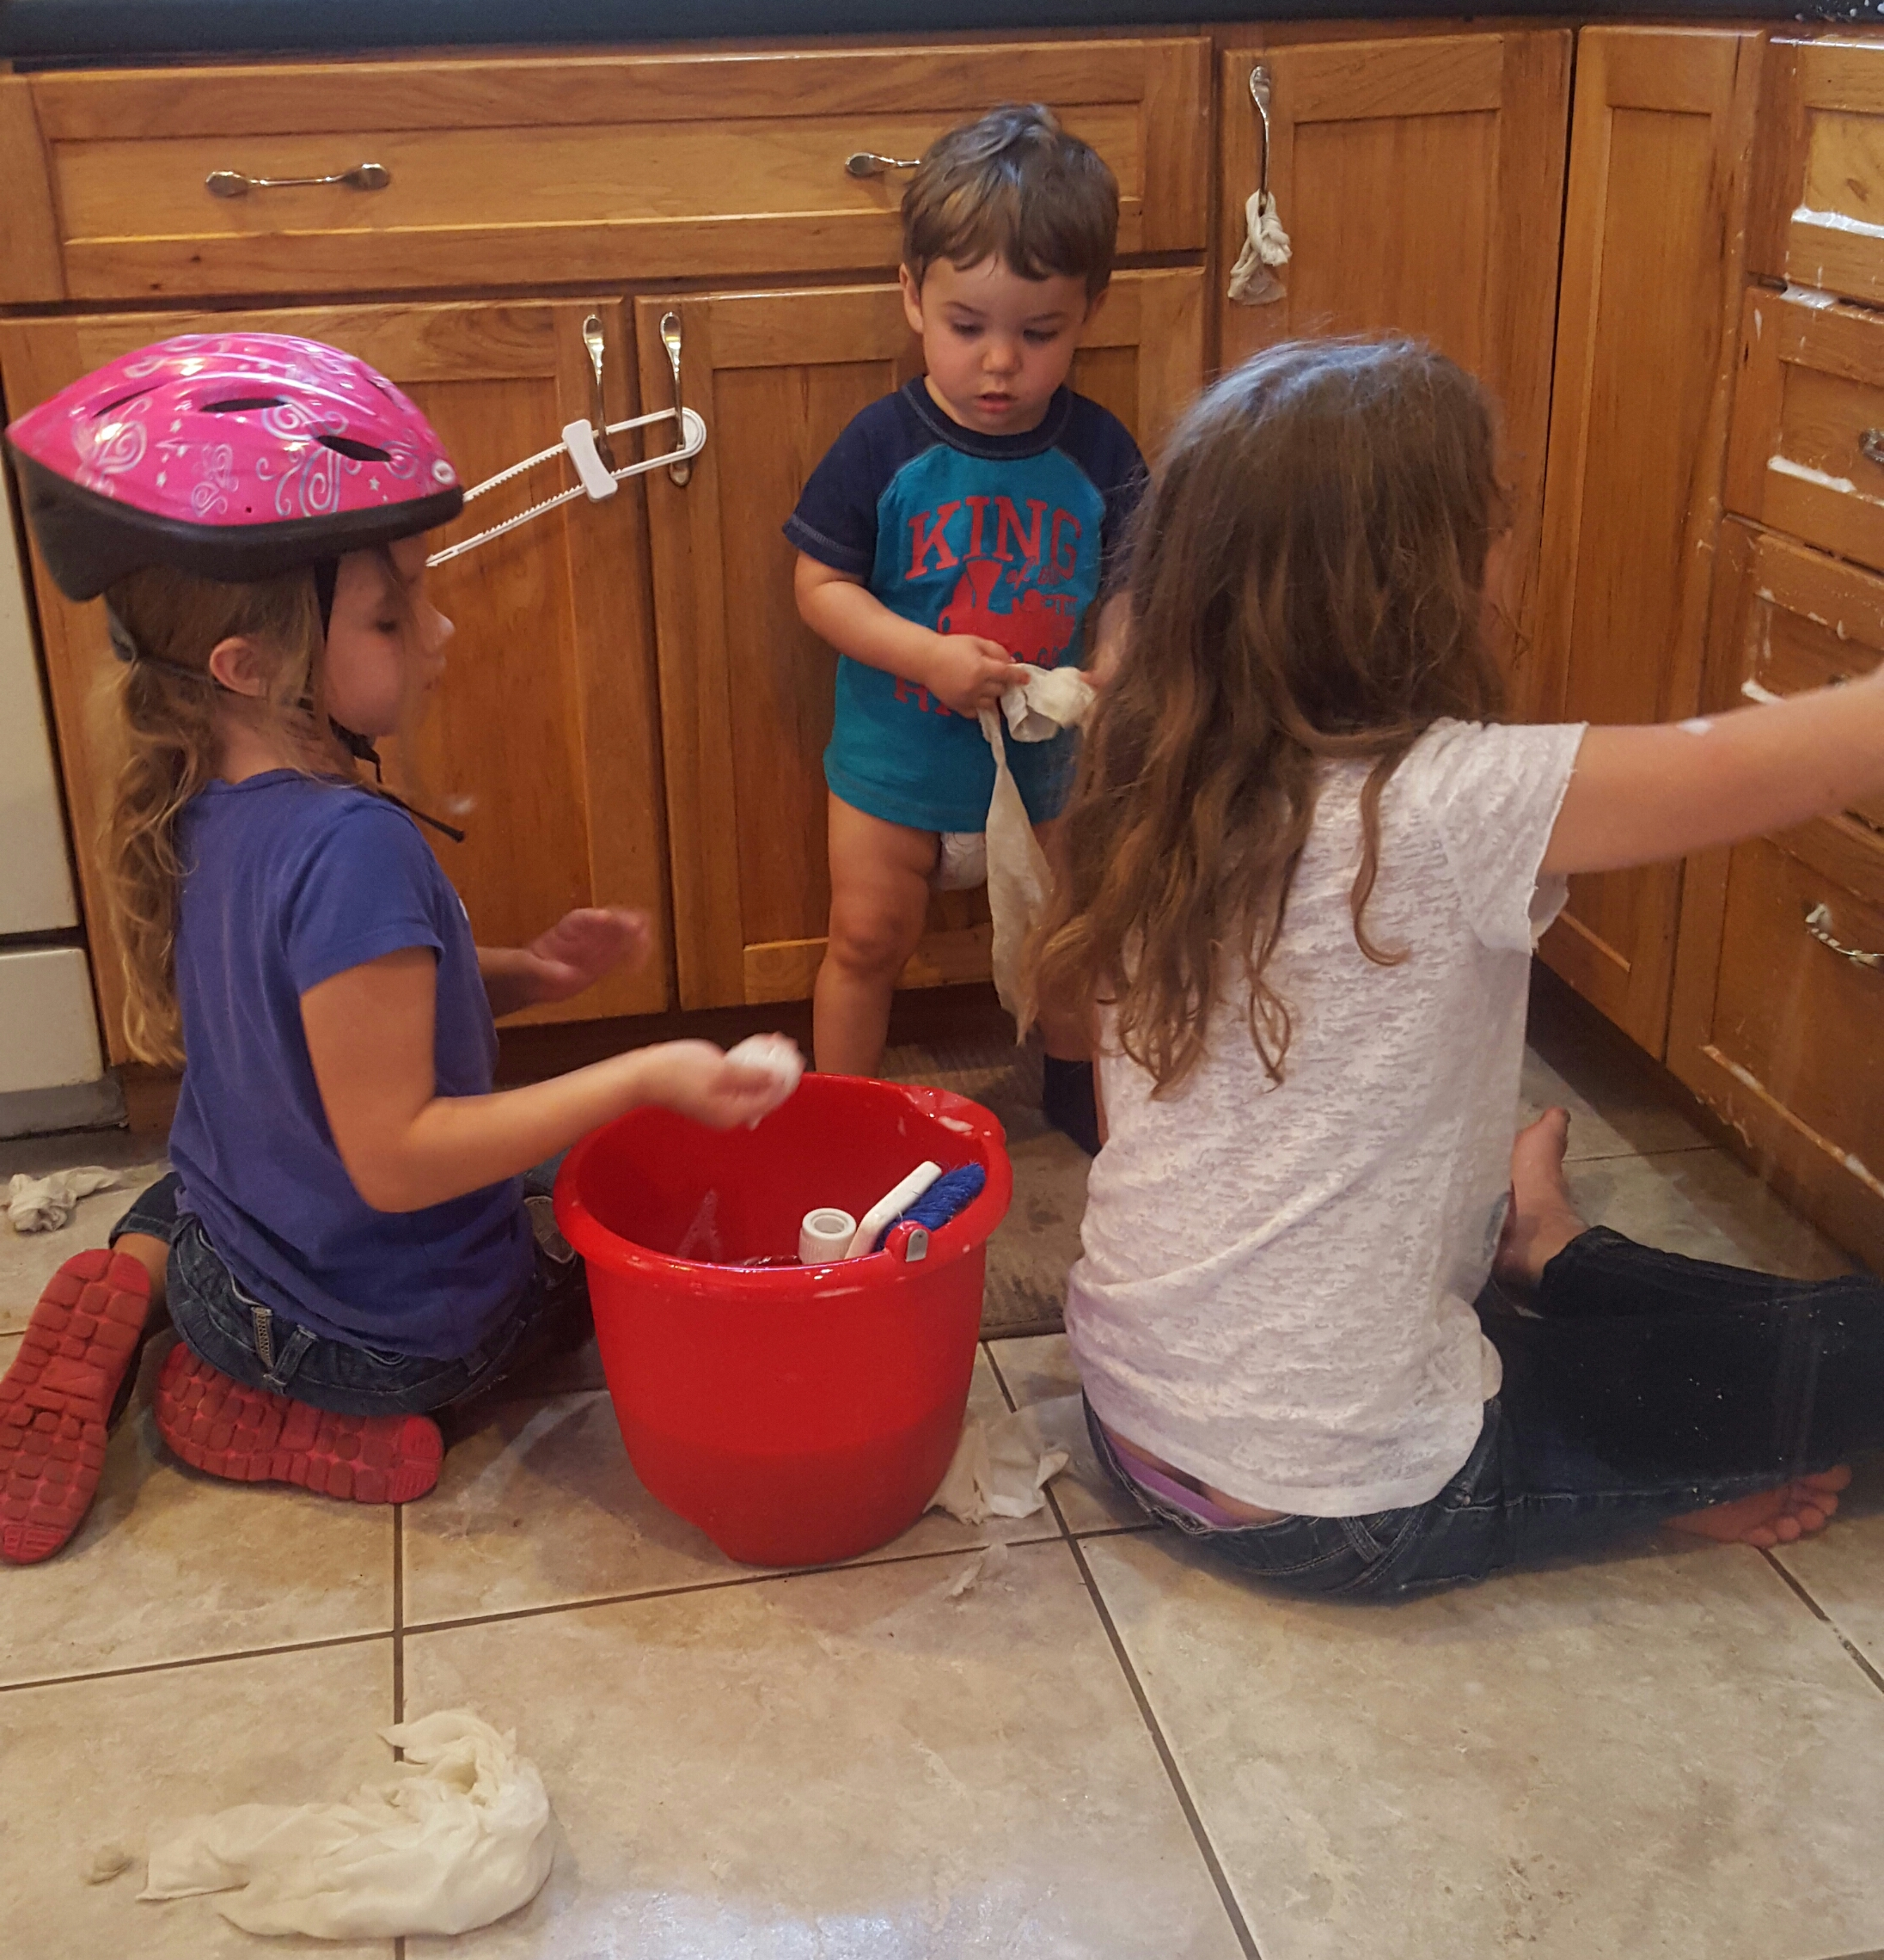 This is two of my girls (Kate, age 6 and Anna, age 9) and my son (17 months) scrubbing cabinets to earn money for charity.